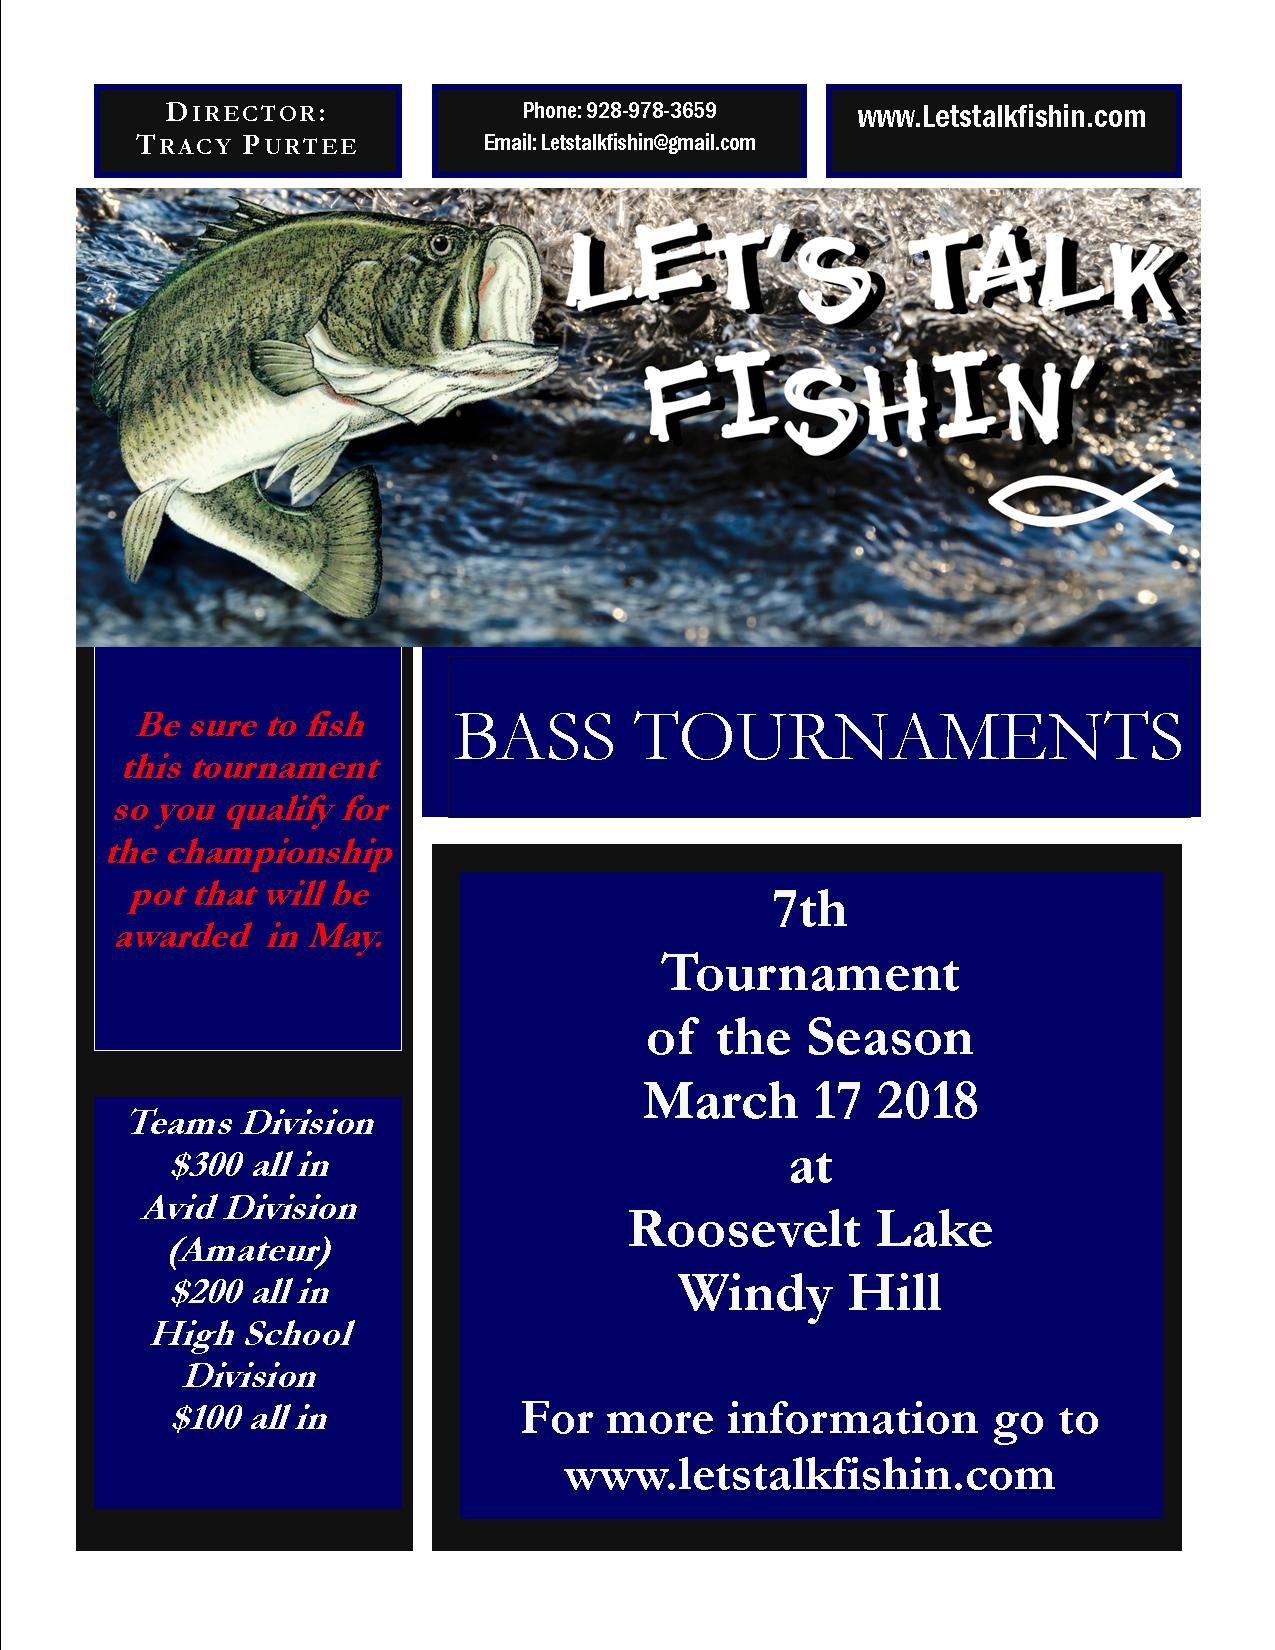 Click image for larger version  Name:7th Tournament.jpg Views:1549 Size:283.6 KB ID:96826